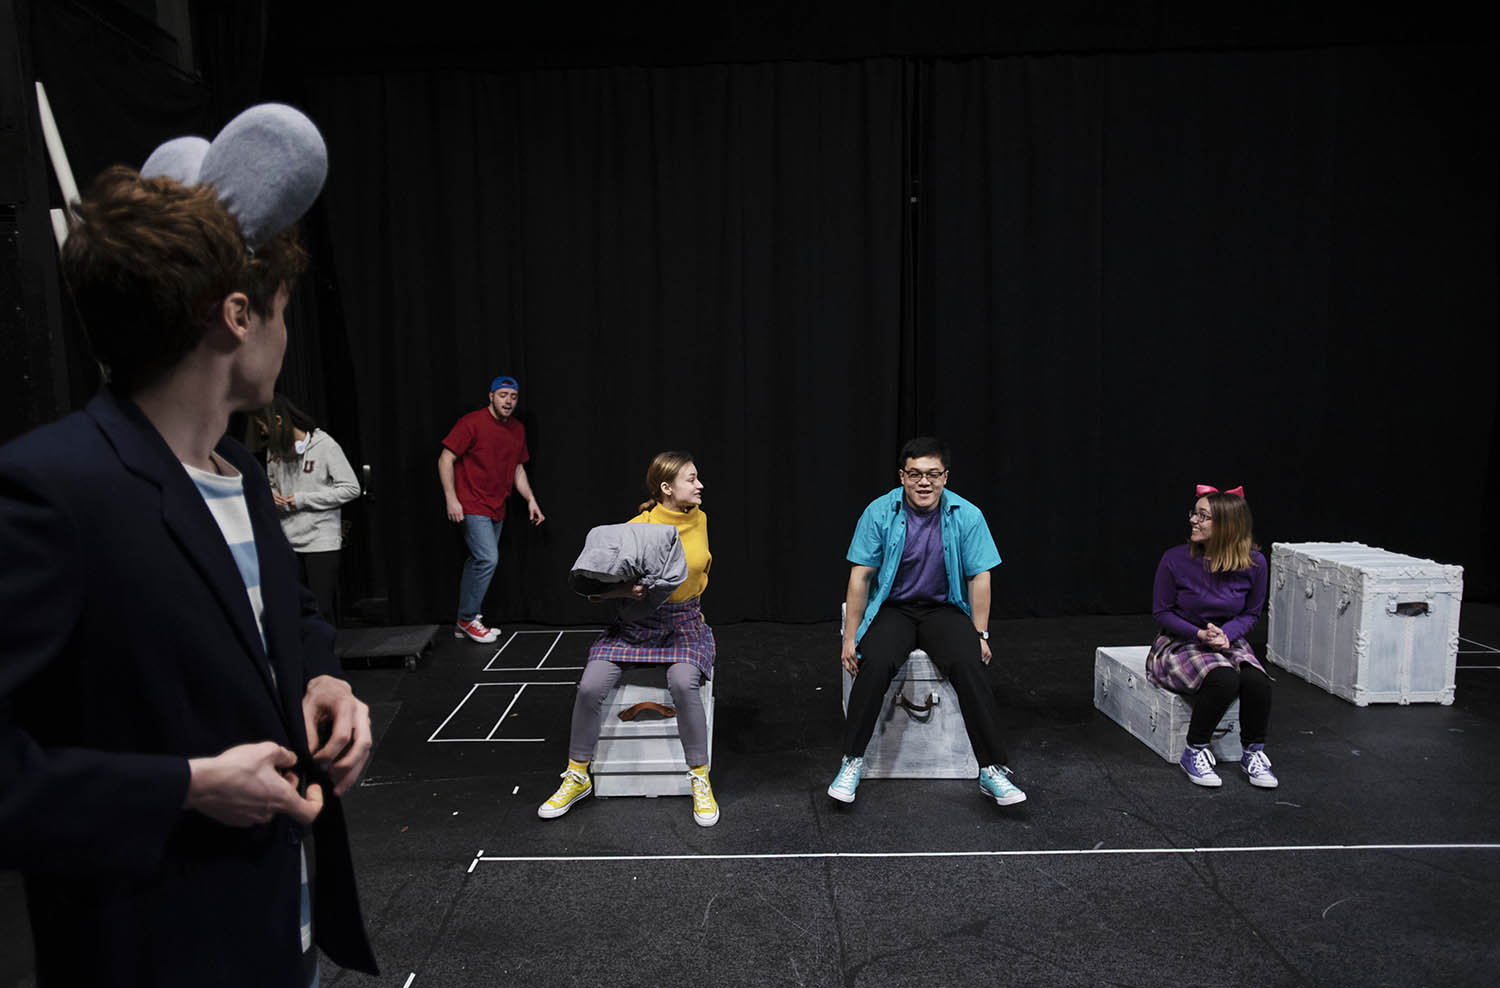 Union College interns rehearse for Stuart Little at The Yulman Theatre at Union College in Schenectady Friday, March 22, 2019. The production, which is made up of all Union College interns, is the first to be put on by PB&J Cafe at Proctors through the School of the Performing Arts.